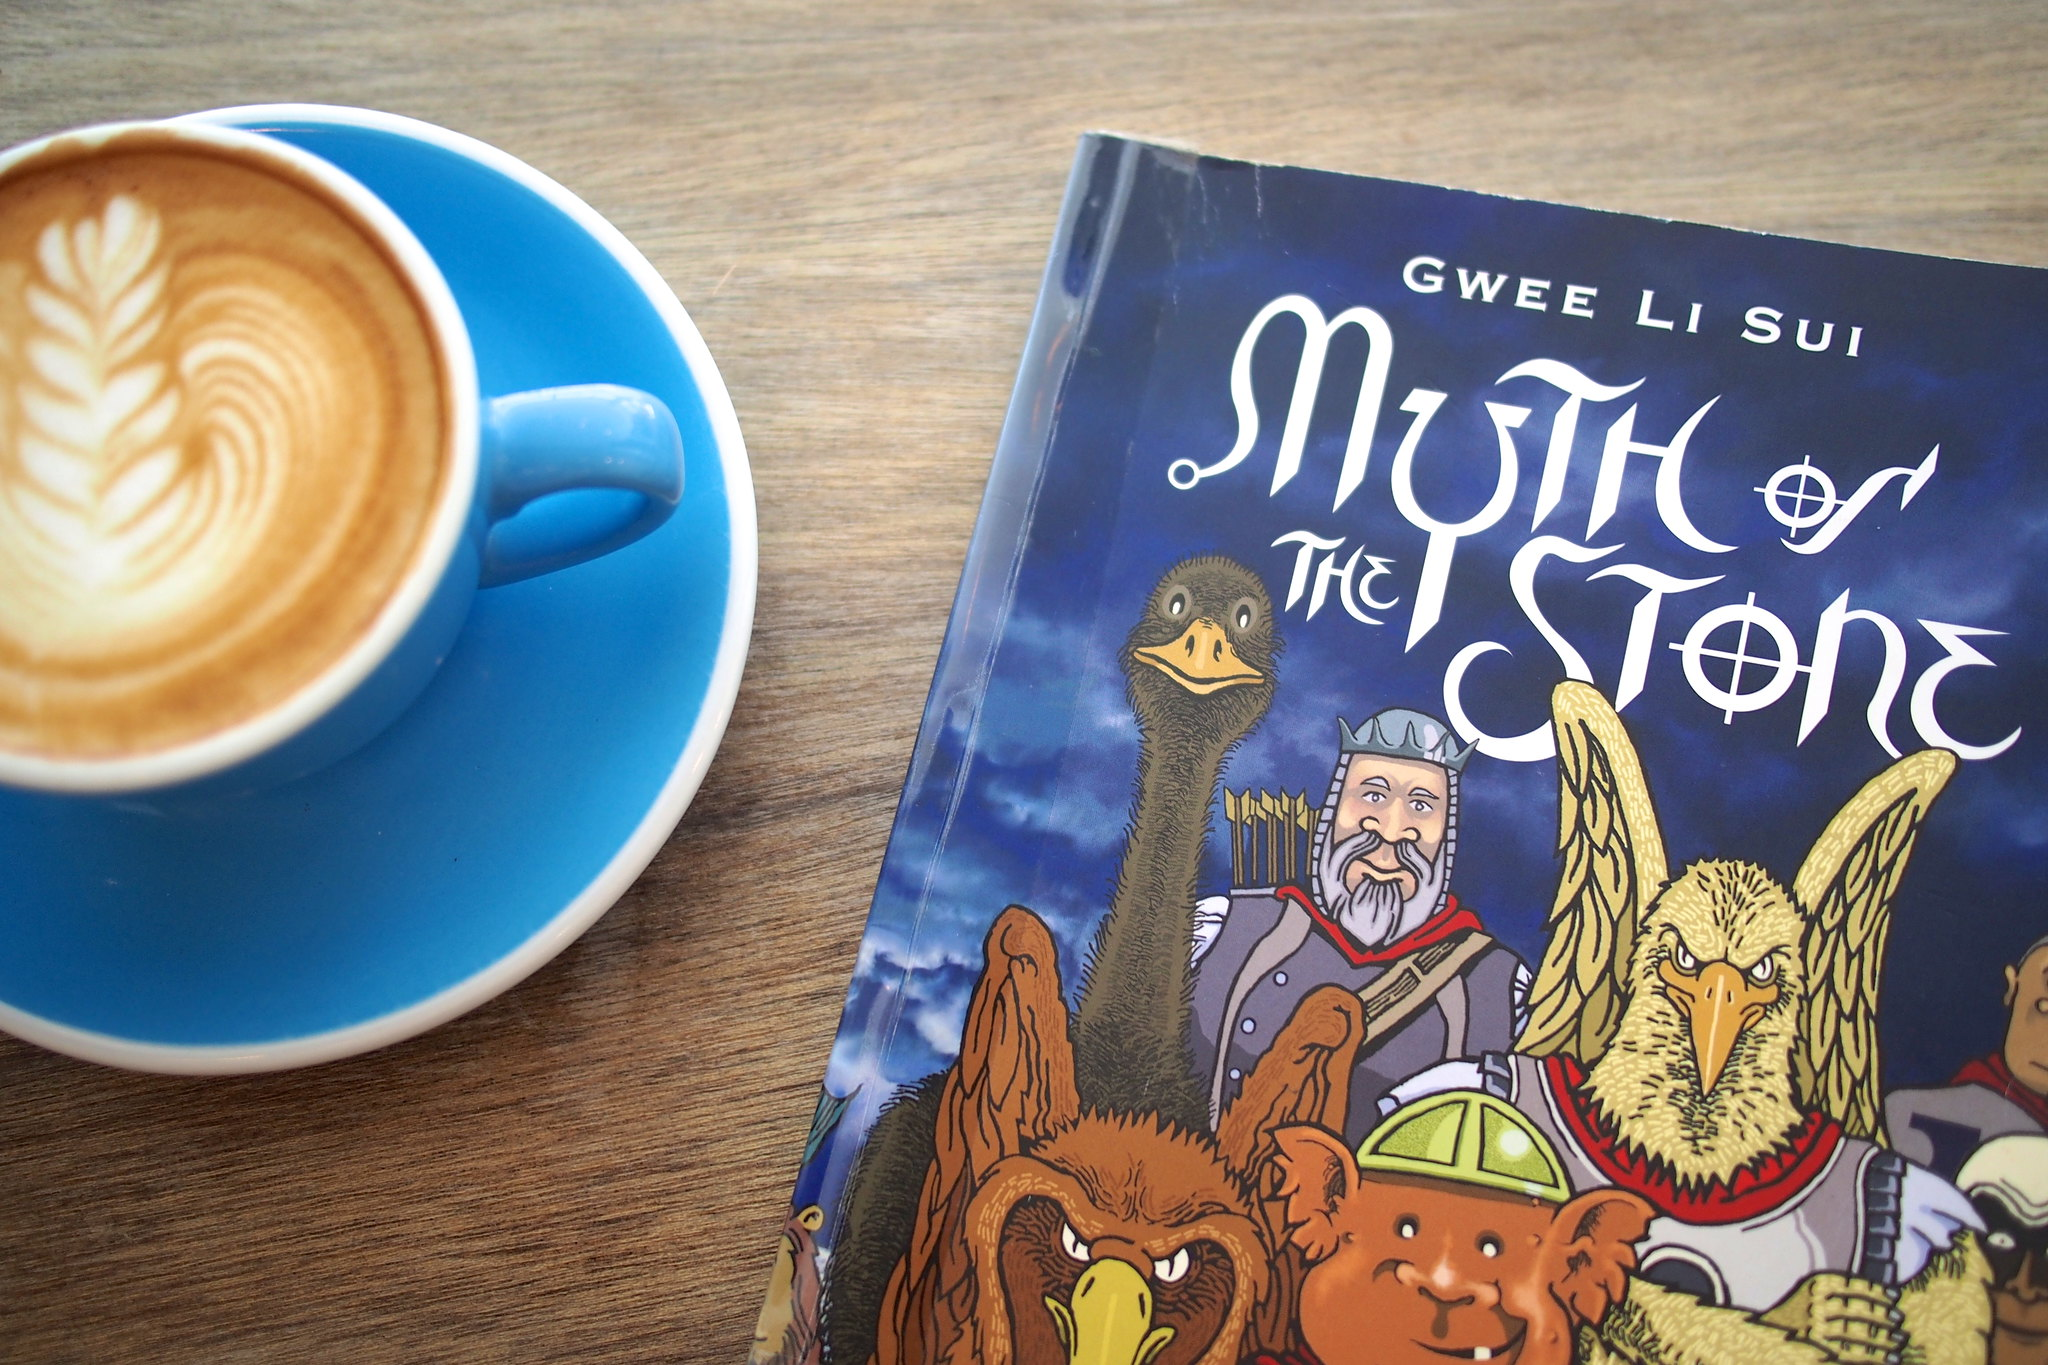 Five by Five Flat White x Gwee Li Sui's Myth of the Stone